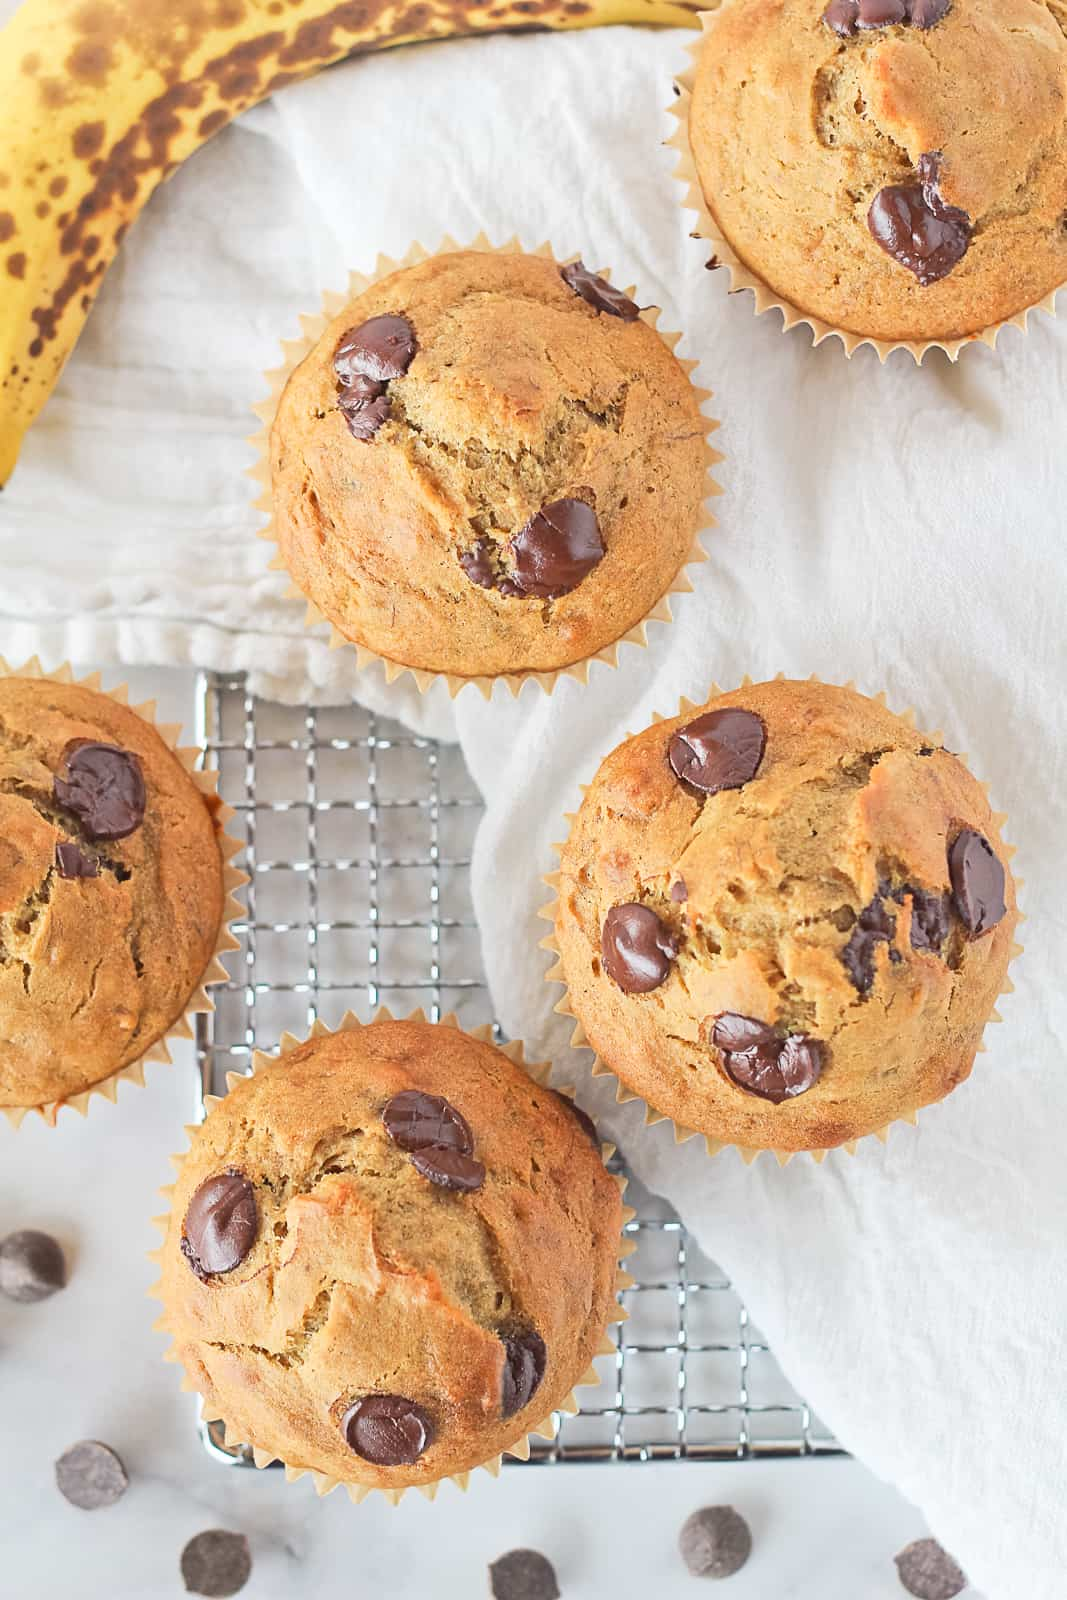 Gluten Free Dairy Free Banana Chocolate Chip Muffins on a cooling rack with white towel.